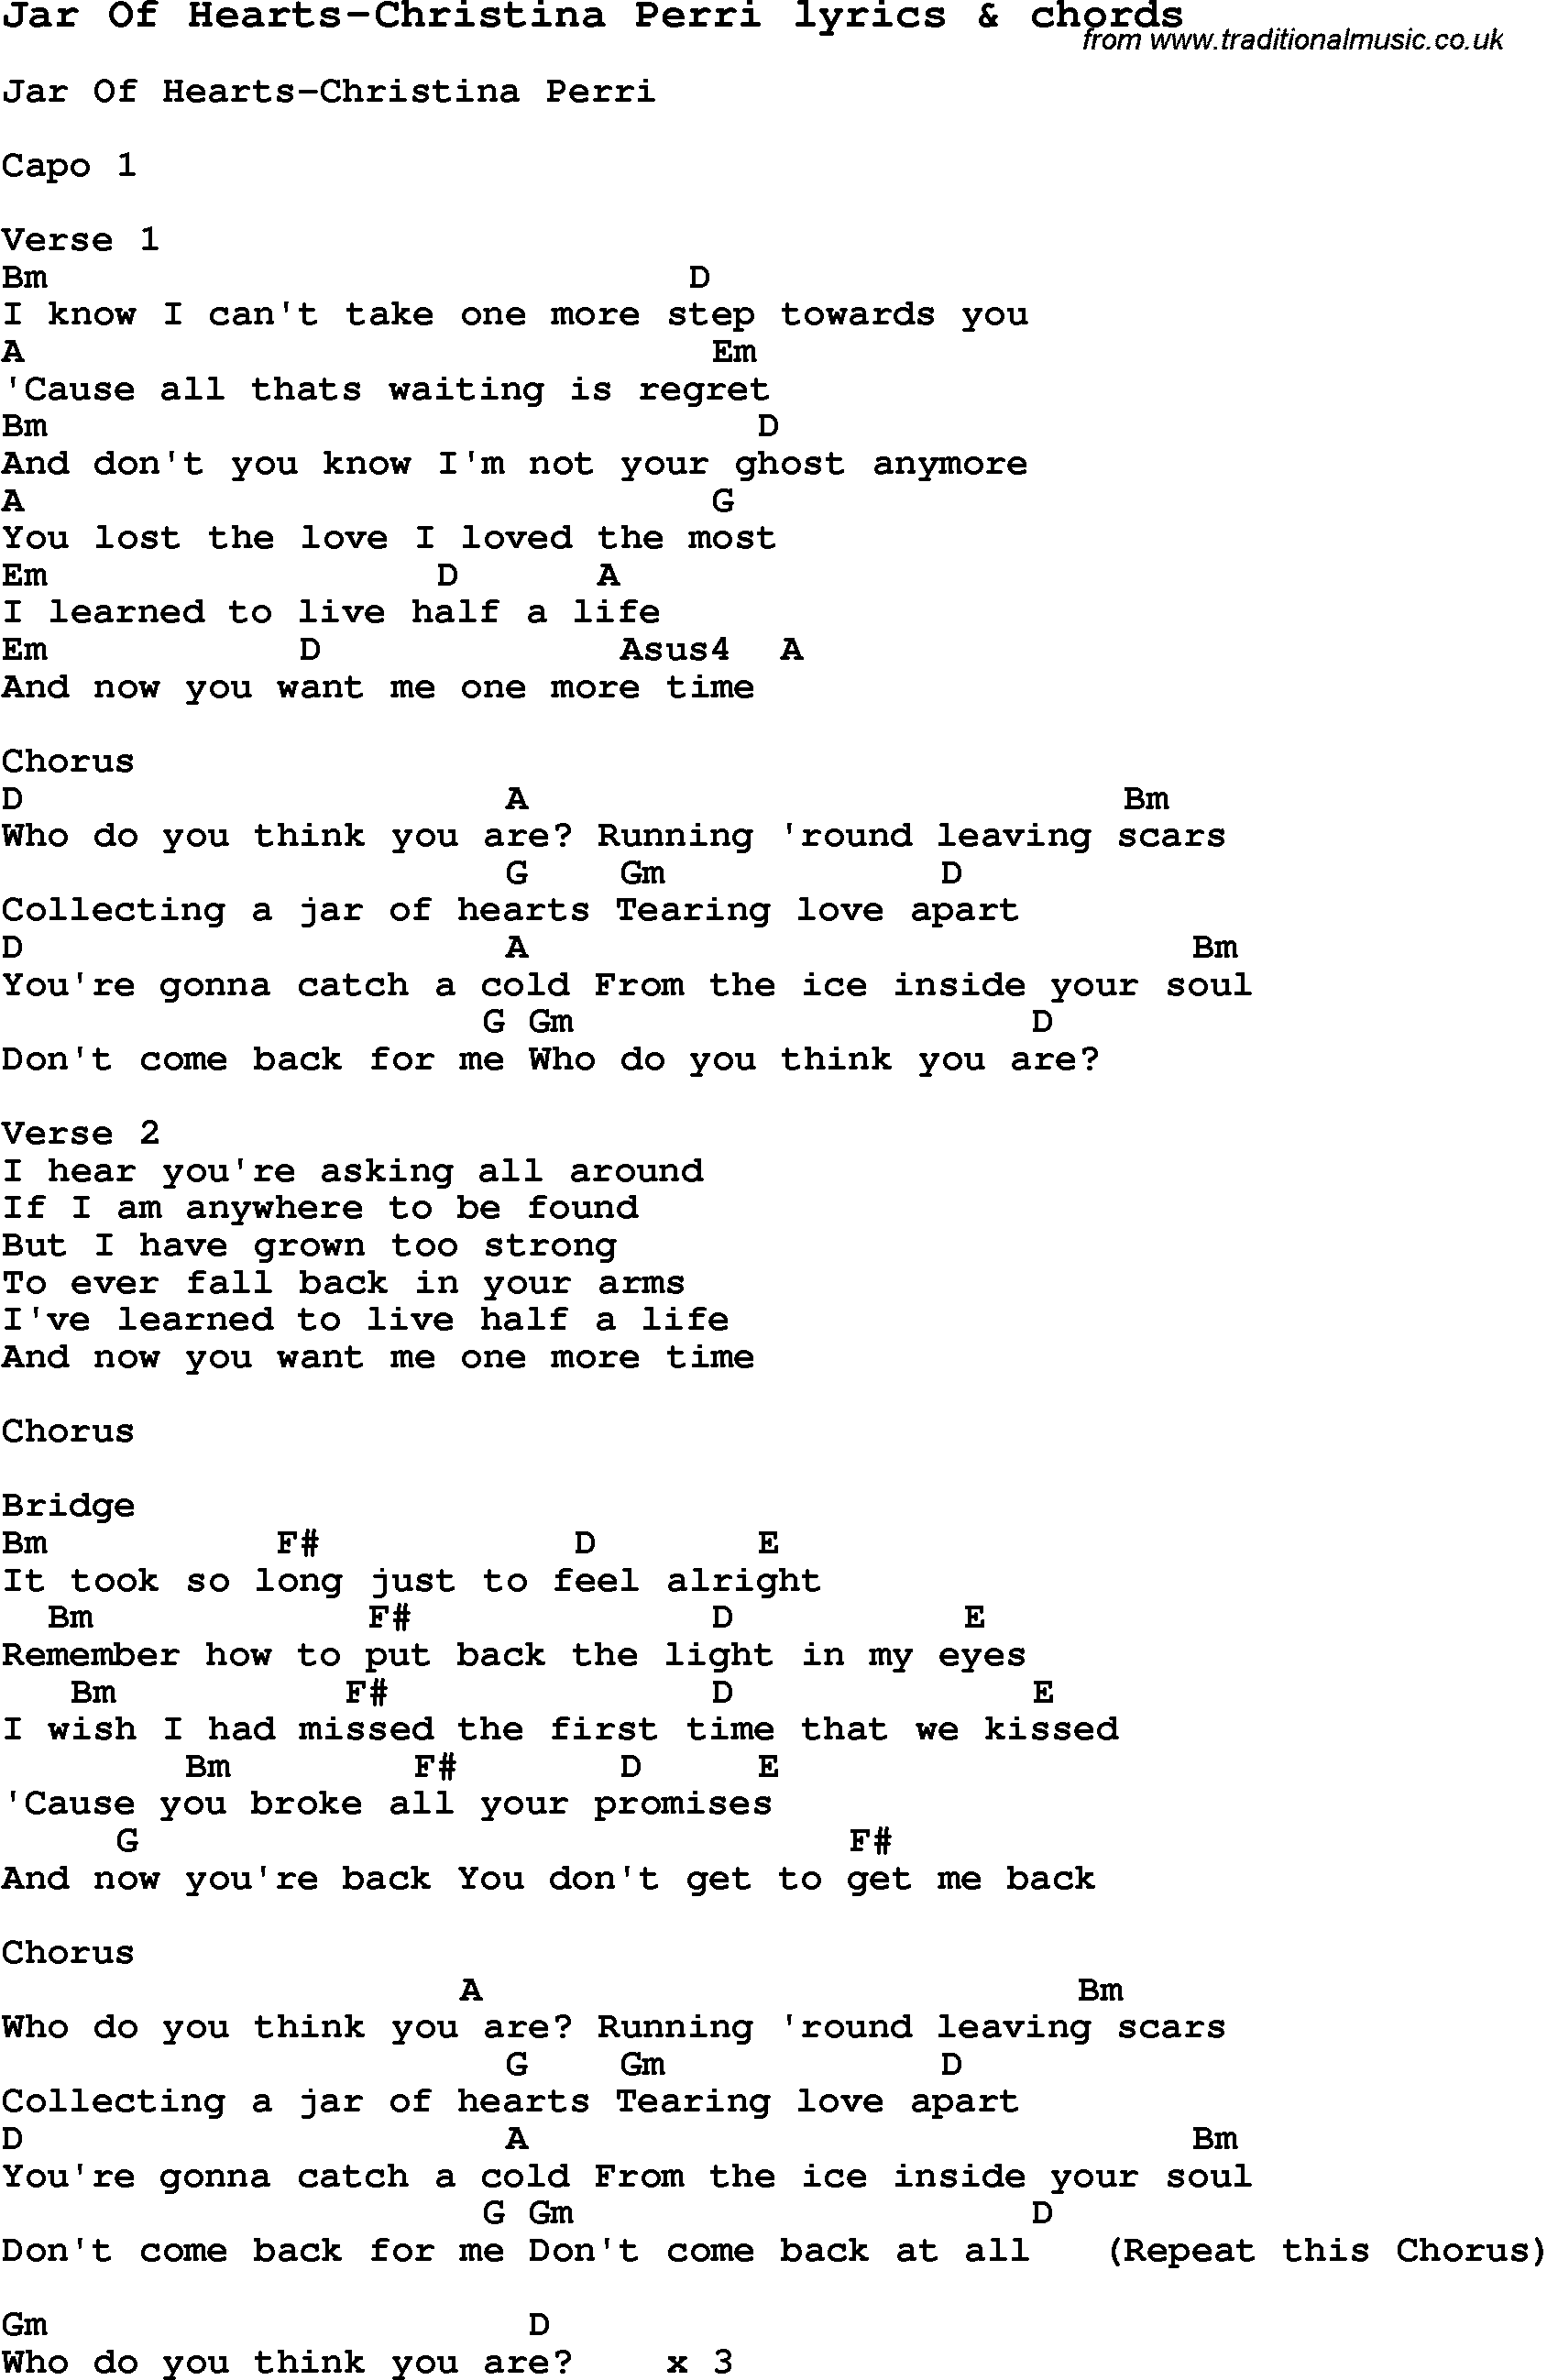 Love song lyrics forjar of hearts christina perri with chords love song lyrics for jar of hearts christina perri with chords for ukulele hexwebz Choice Image